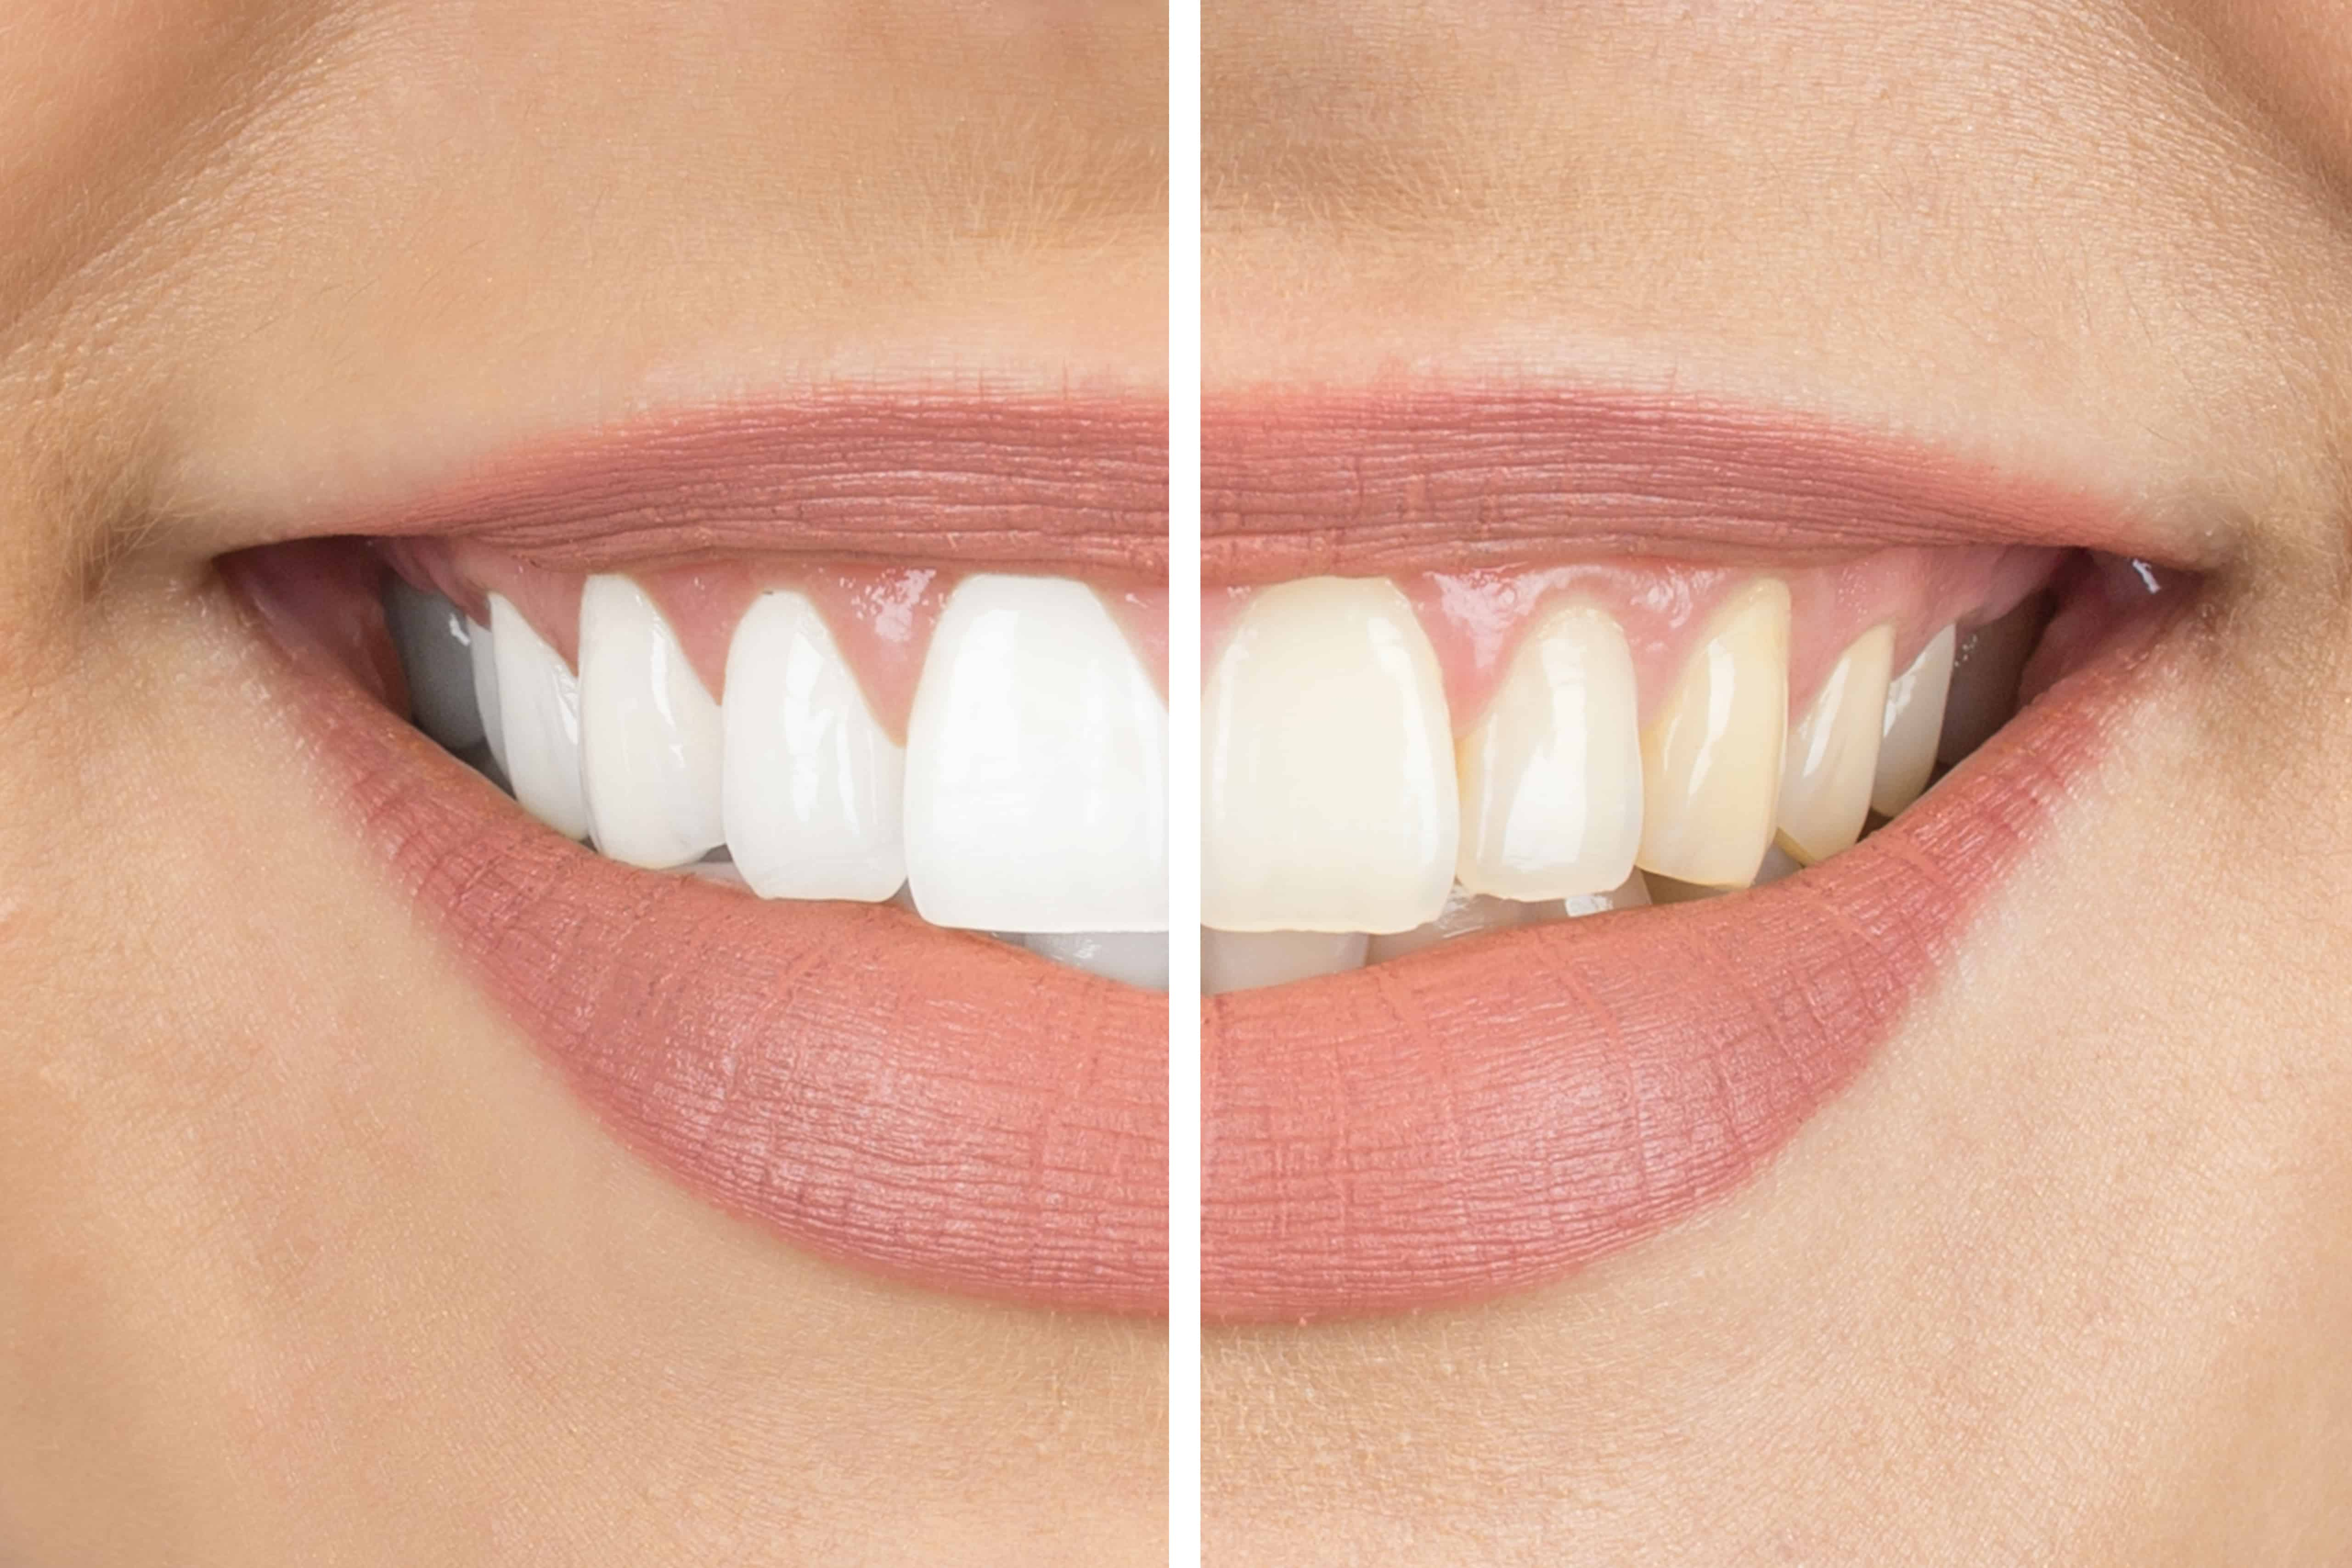 woman smiling before and after teeth whitening treatment